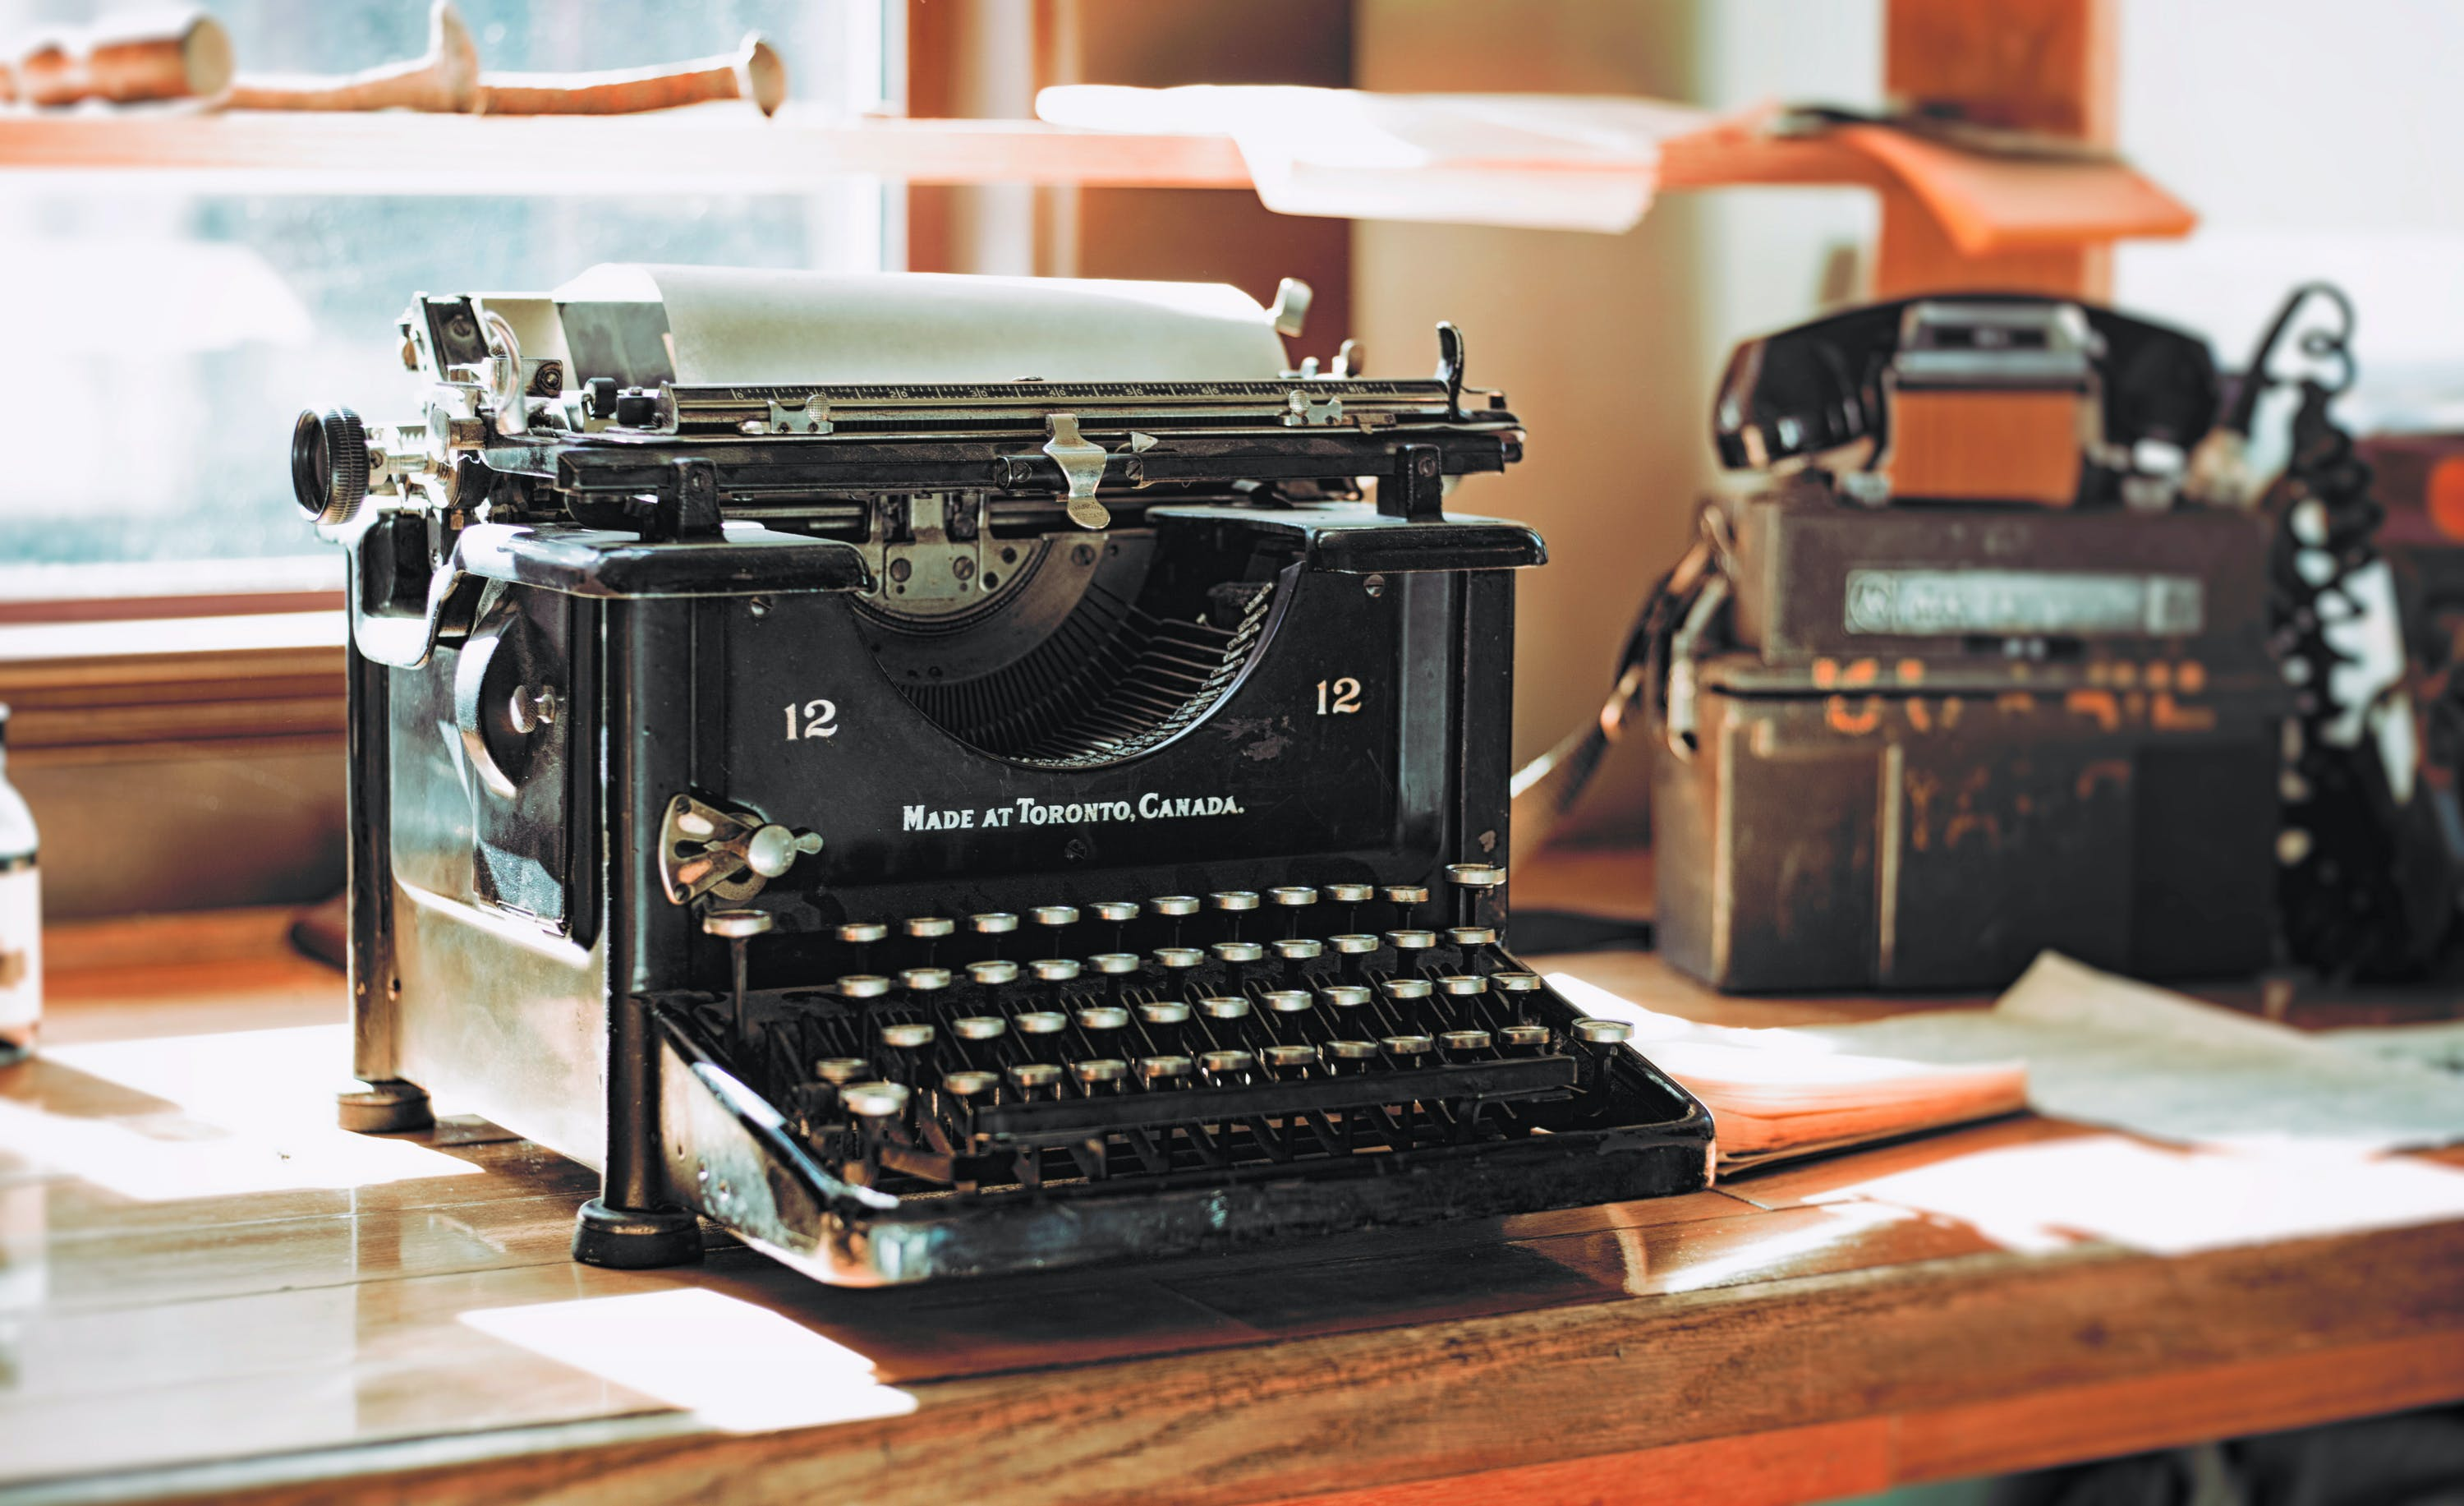 Classic Black Typewriter on Brown Wooden Desk